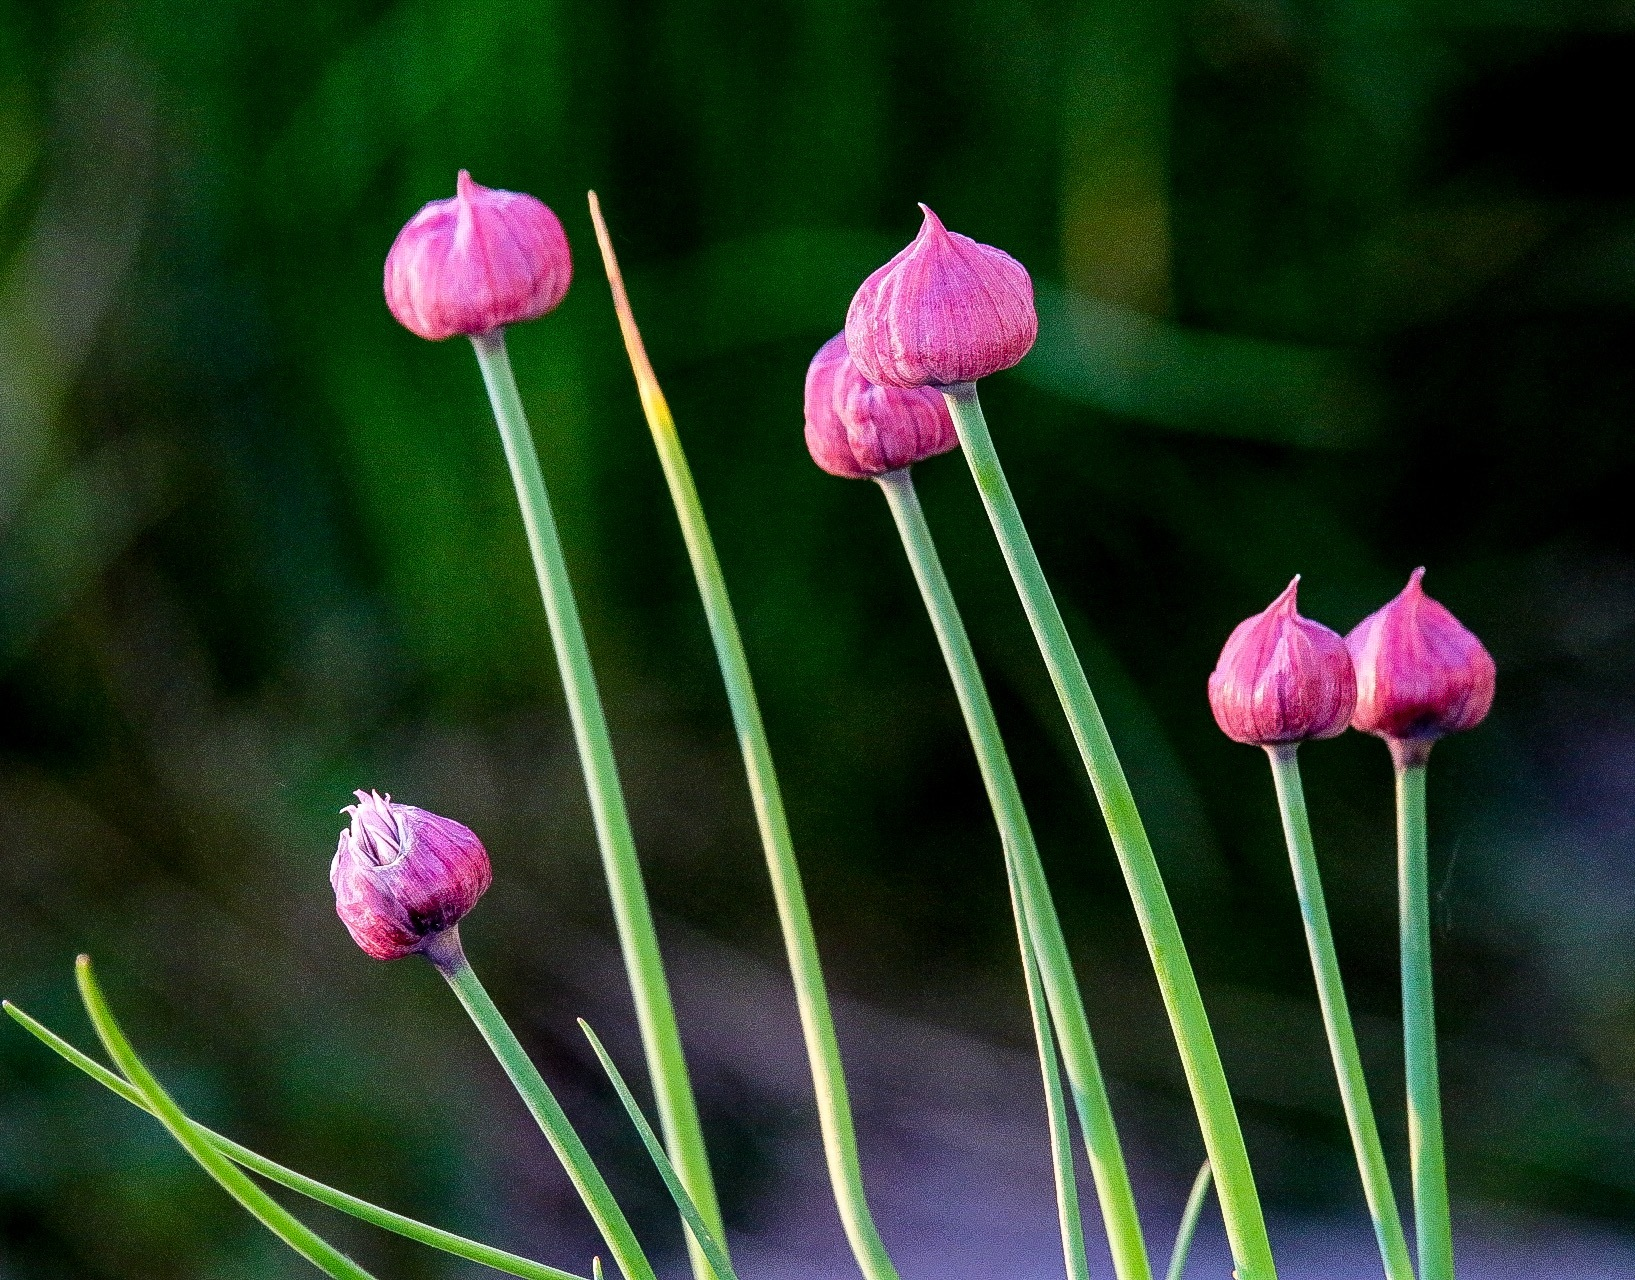 Chive by Ingstina